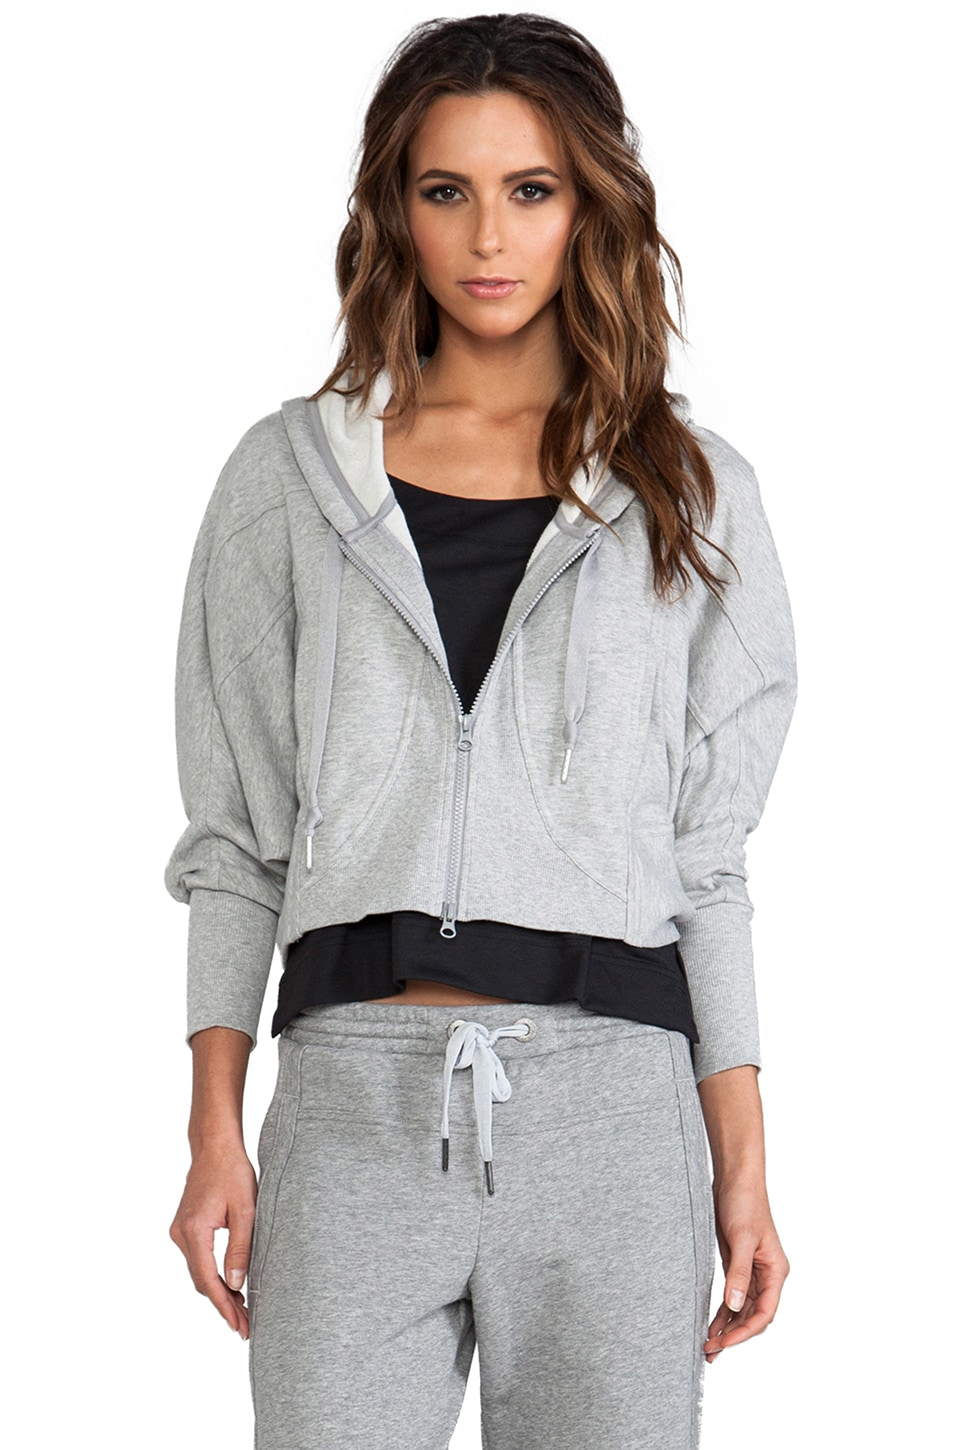 adidas by Stella McCartney Stu Hoodie A in Medium Heather Grey